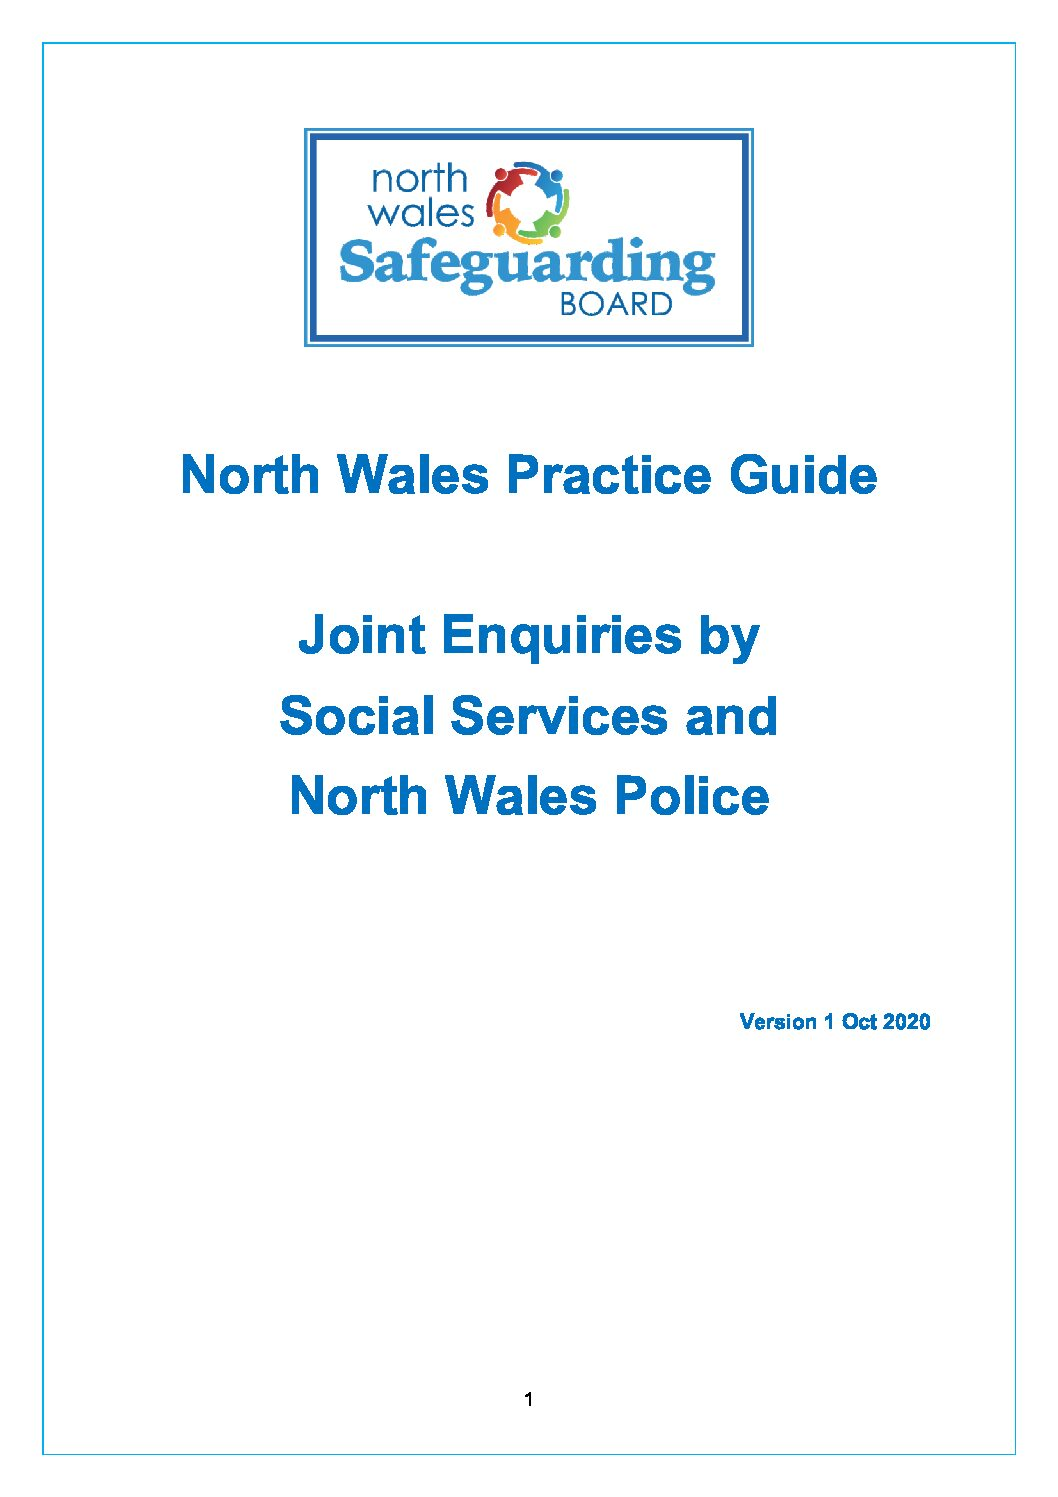 North Wales Practice Guide; Joint Enquiries by Social Services and North Wales Police